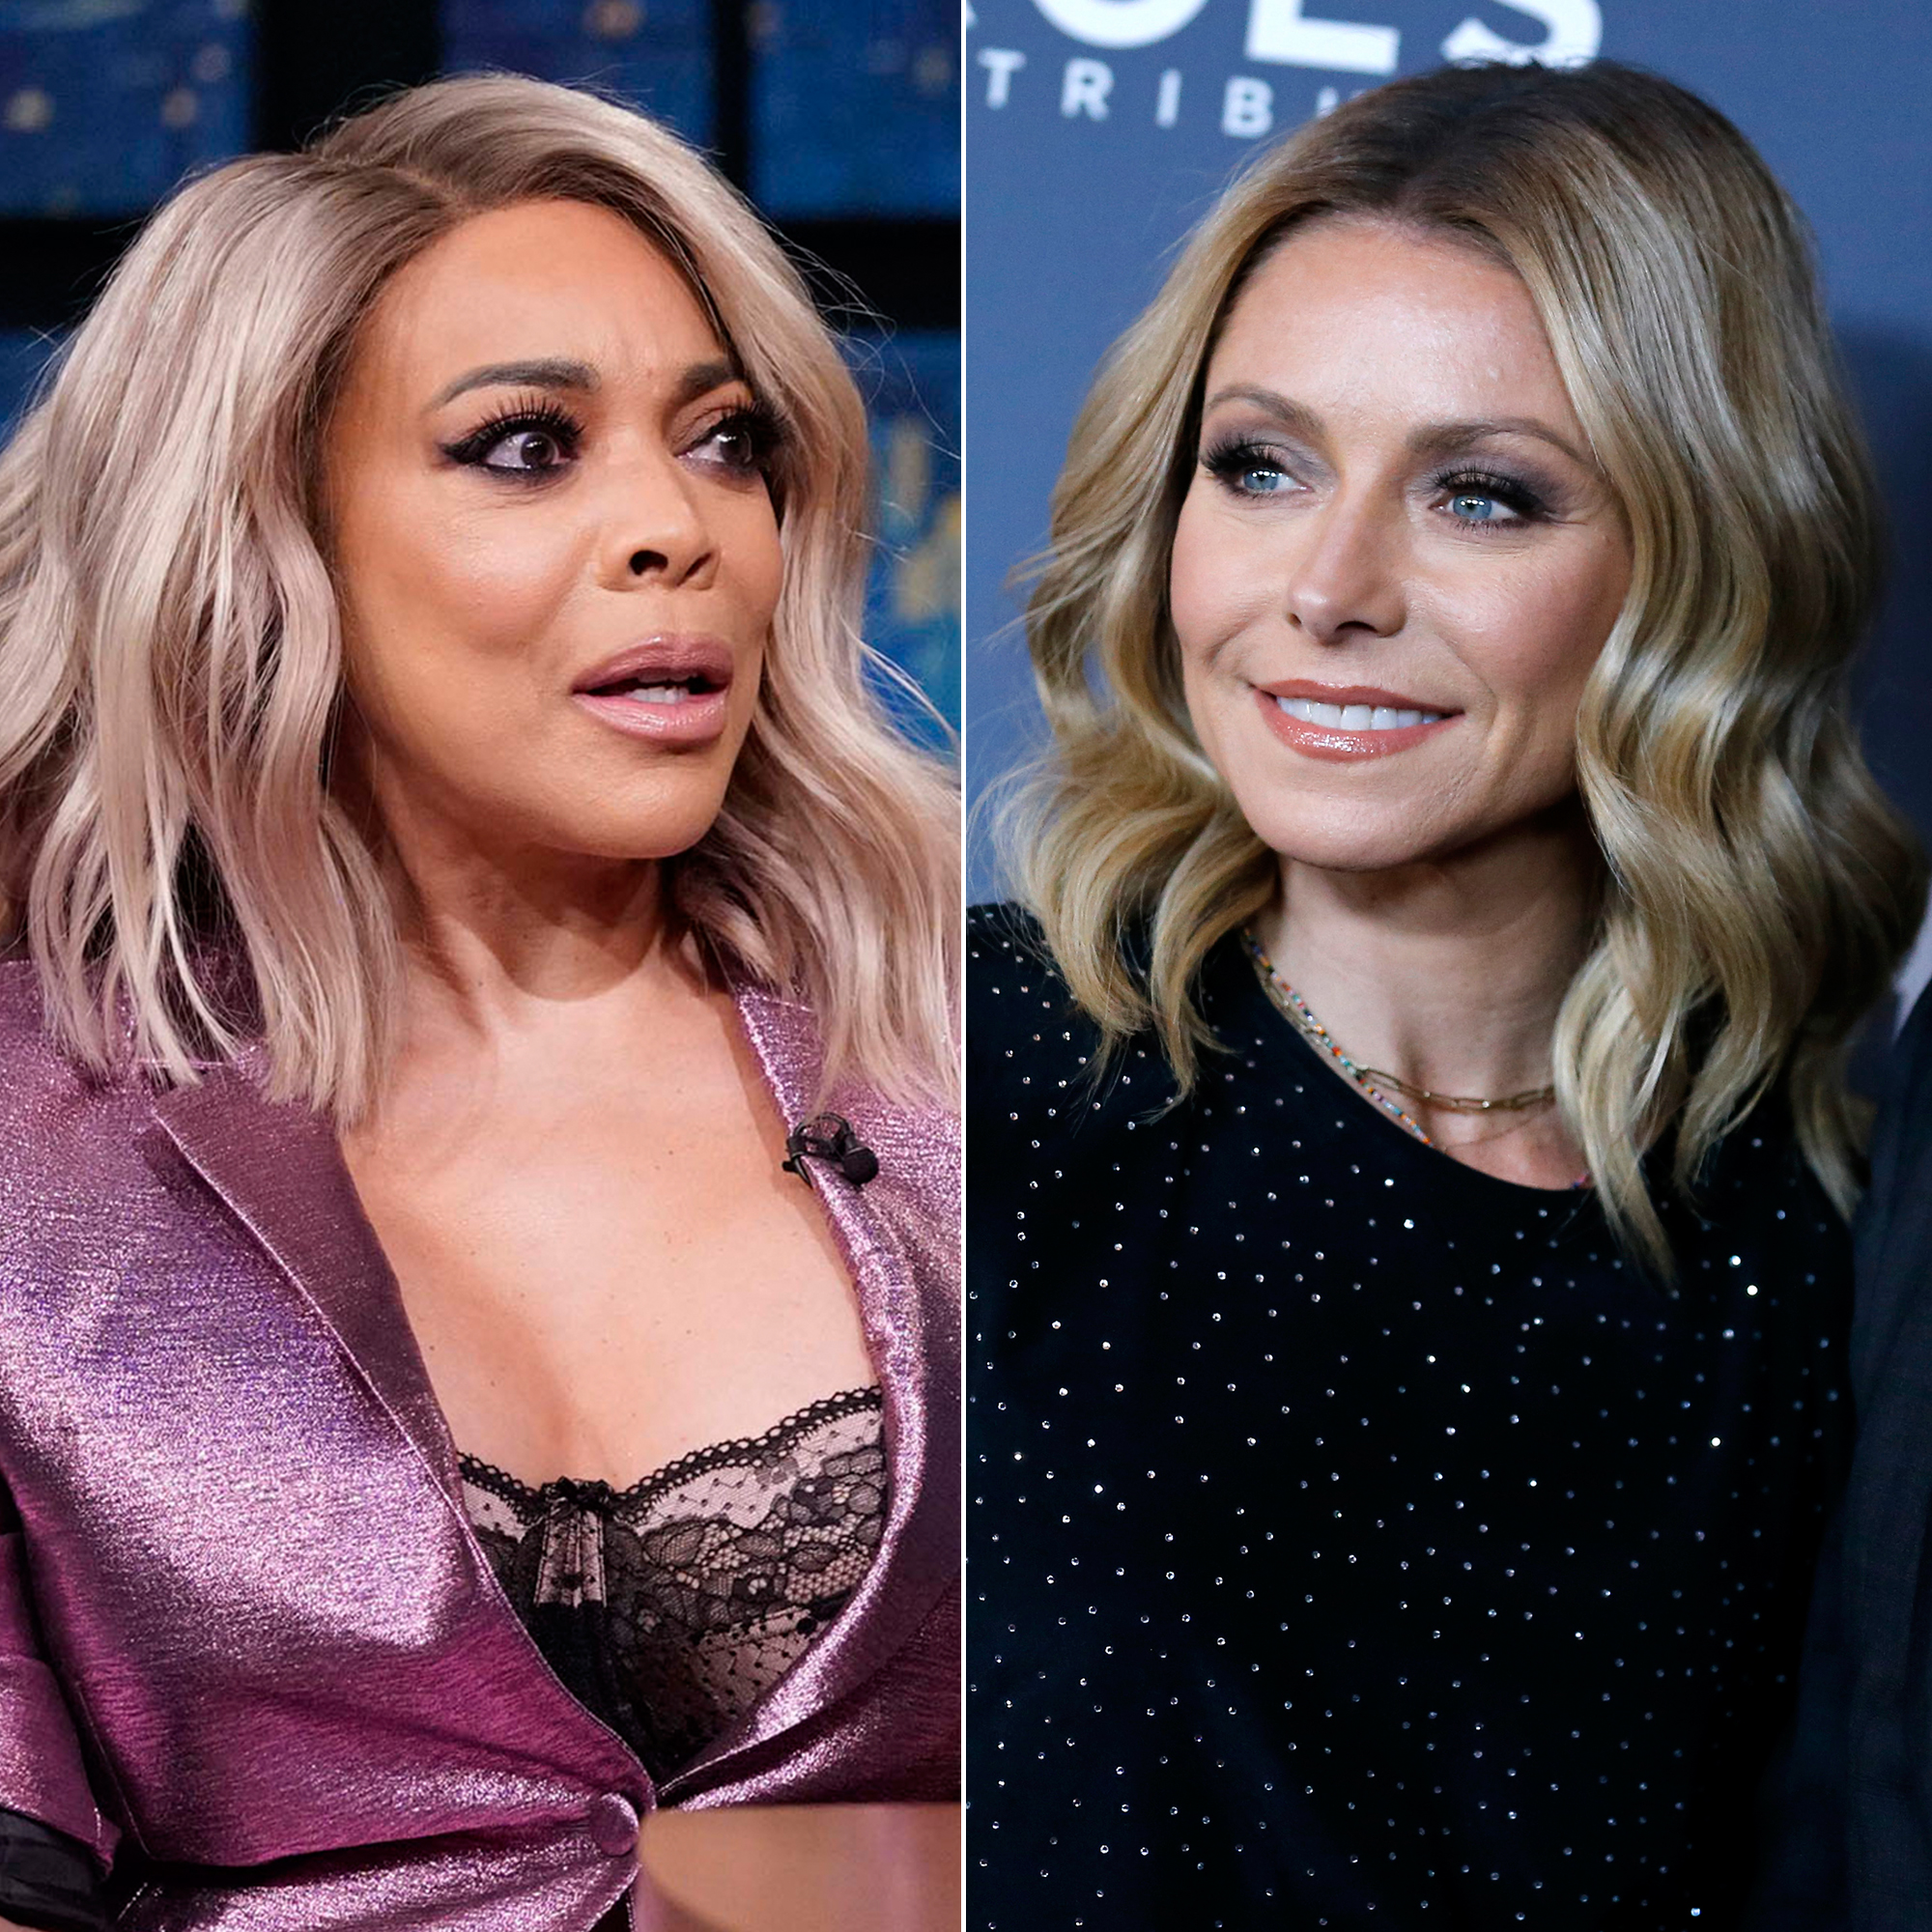 Wendy Williams Defends Kelly Ripa After 'Bachelorette' Criticism - Wendy Williams and Kelly Ripa.